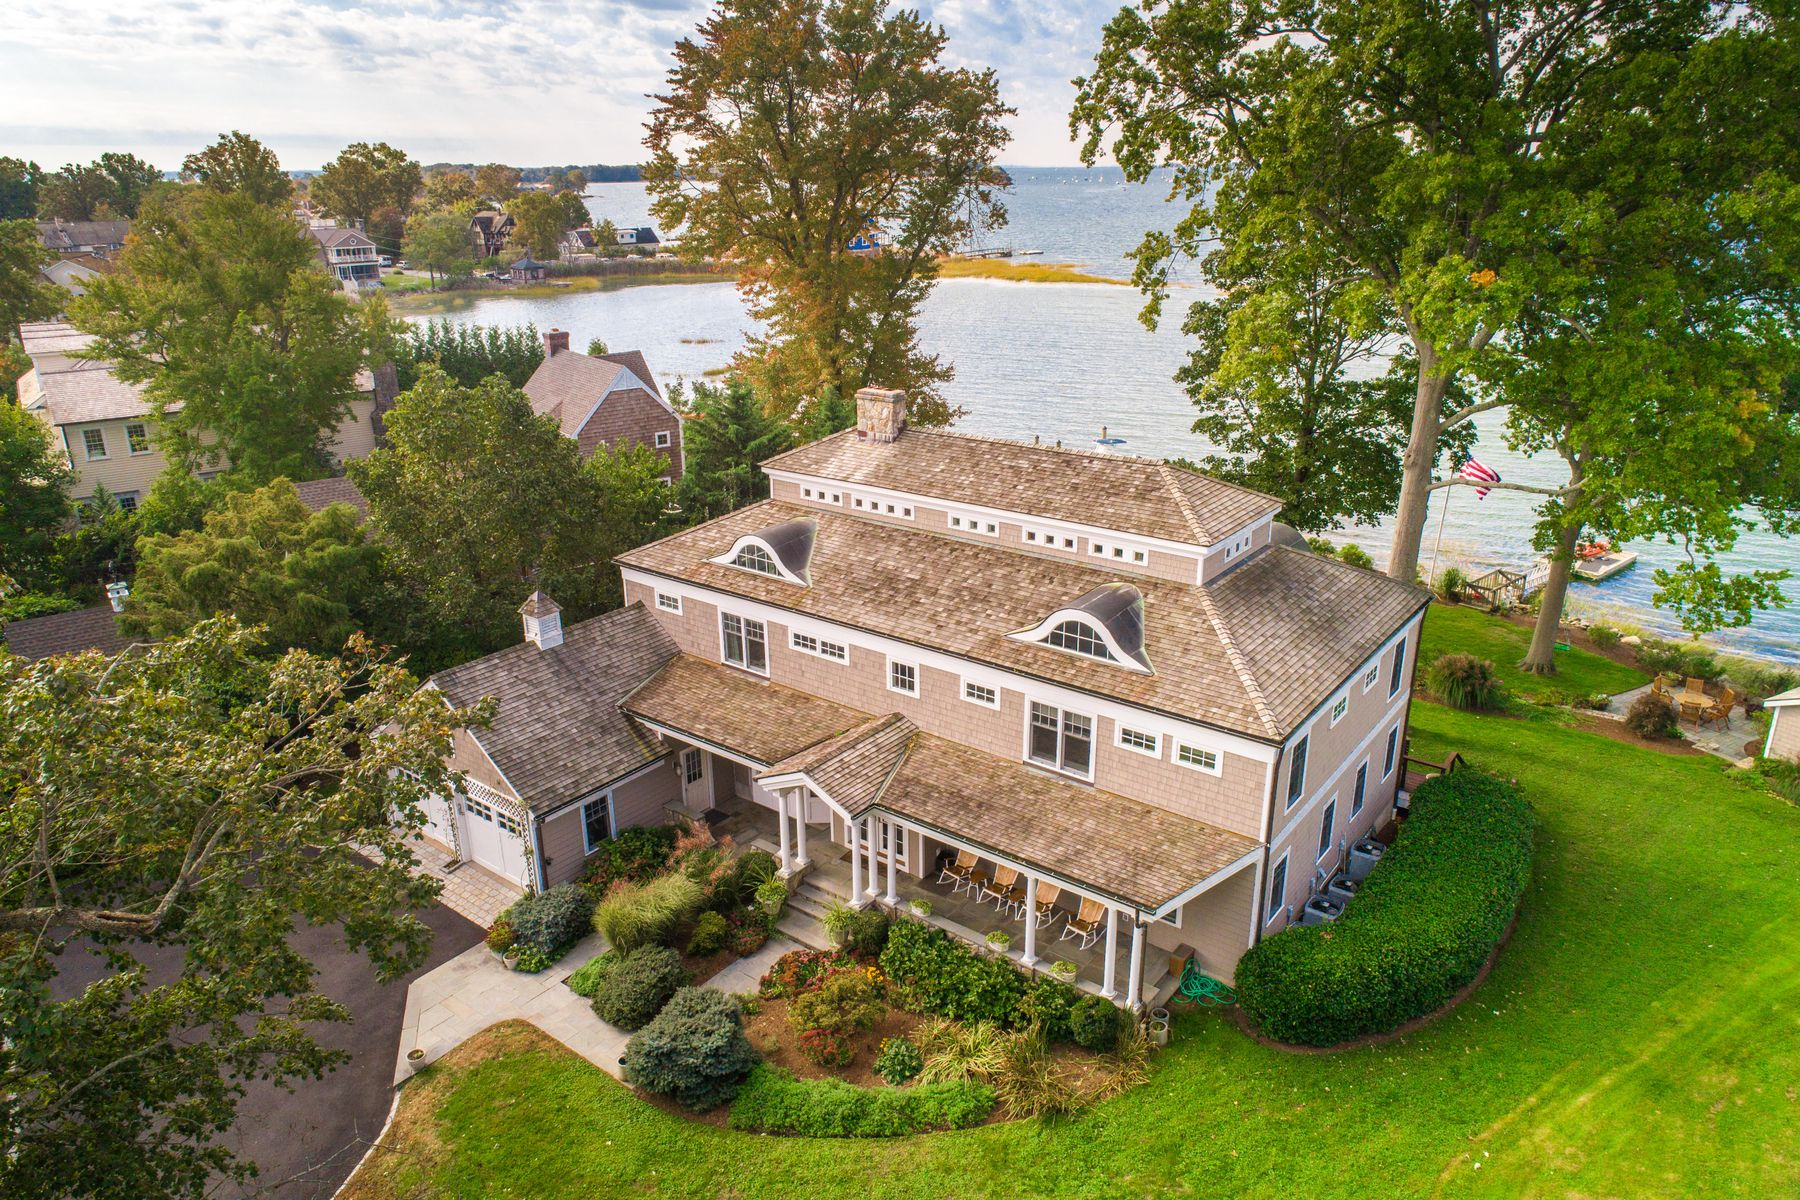 Single Family Homes for Sale at Magical Sunsets Over Greenwich Cove 7 Bryon Road Old Greenwich, Connecticut 06870 United States